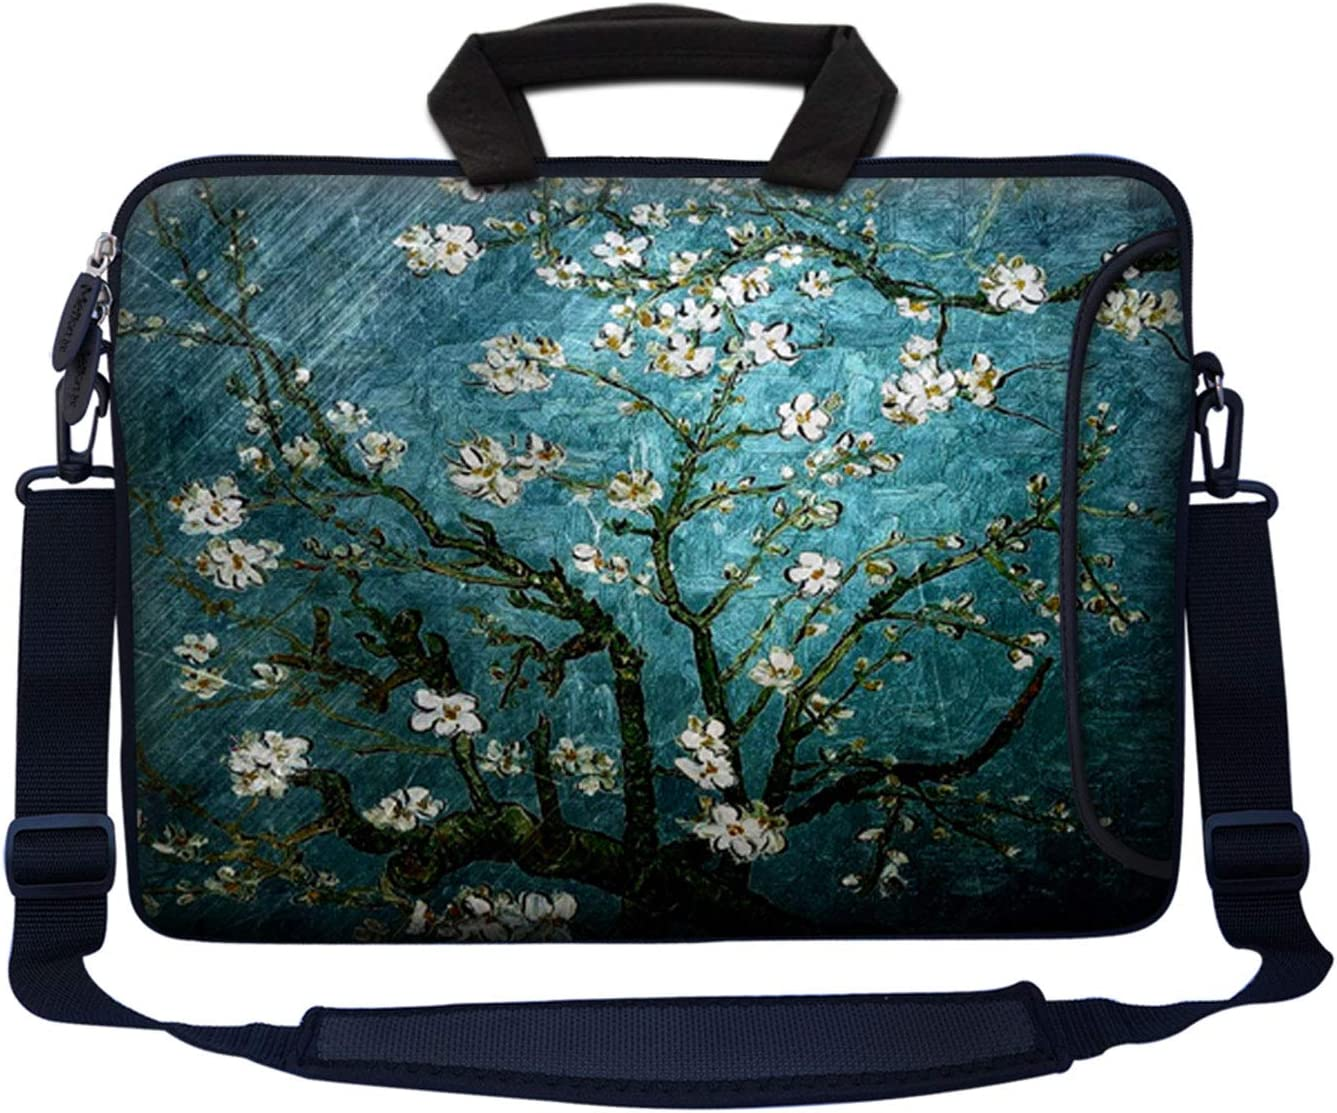 """Meffort Inc 17 17.3 inch Neoprene Laptop Bag Sleeve with Extra Side Pocket, Soft Carrying Handle & Removable Shoulder Strap for 16"""" to 17.3"""" Size Notebook Computer - Vincent van Gogh Almond Blossoming"""